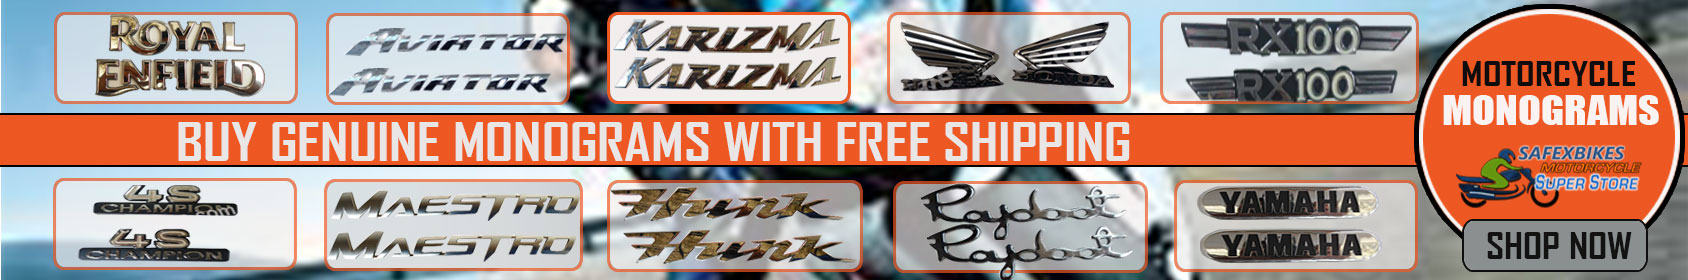 Special offers on Genuine Motorcycle Spare Parts And Accessories - MOTORCYCLE MONOGRAMS